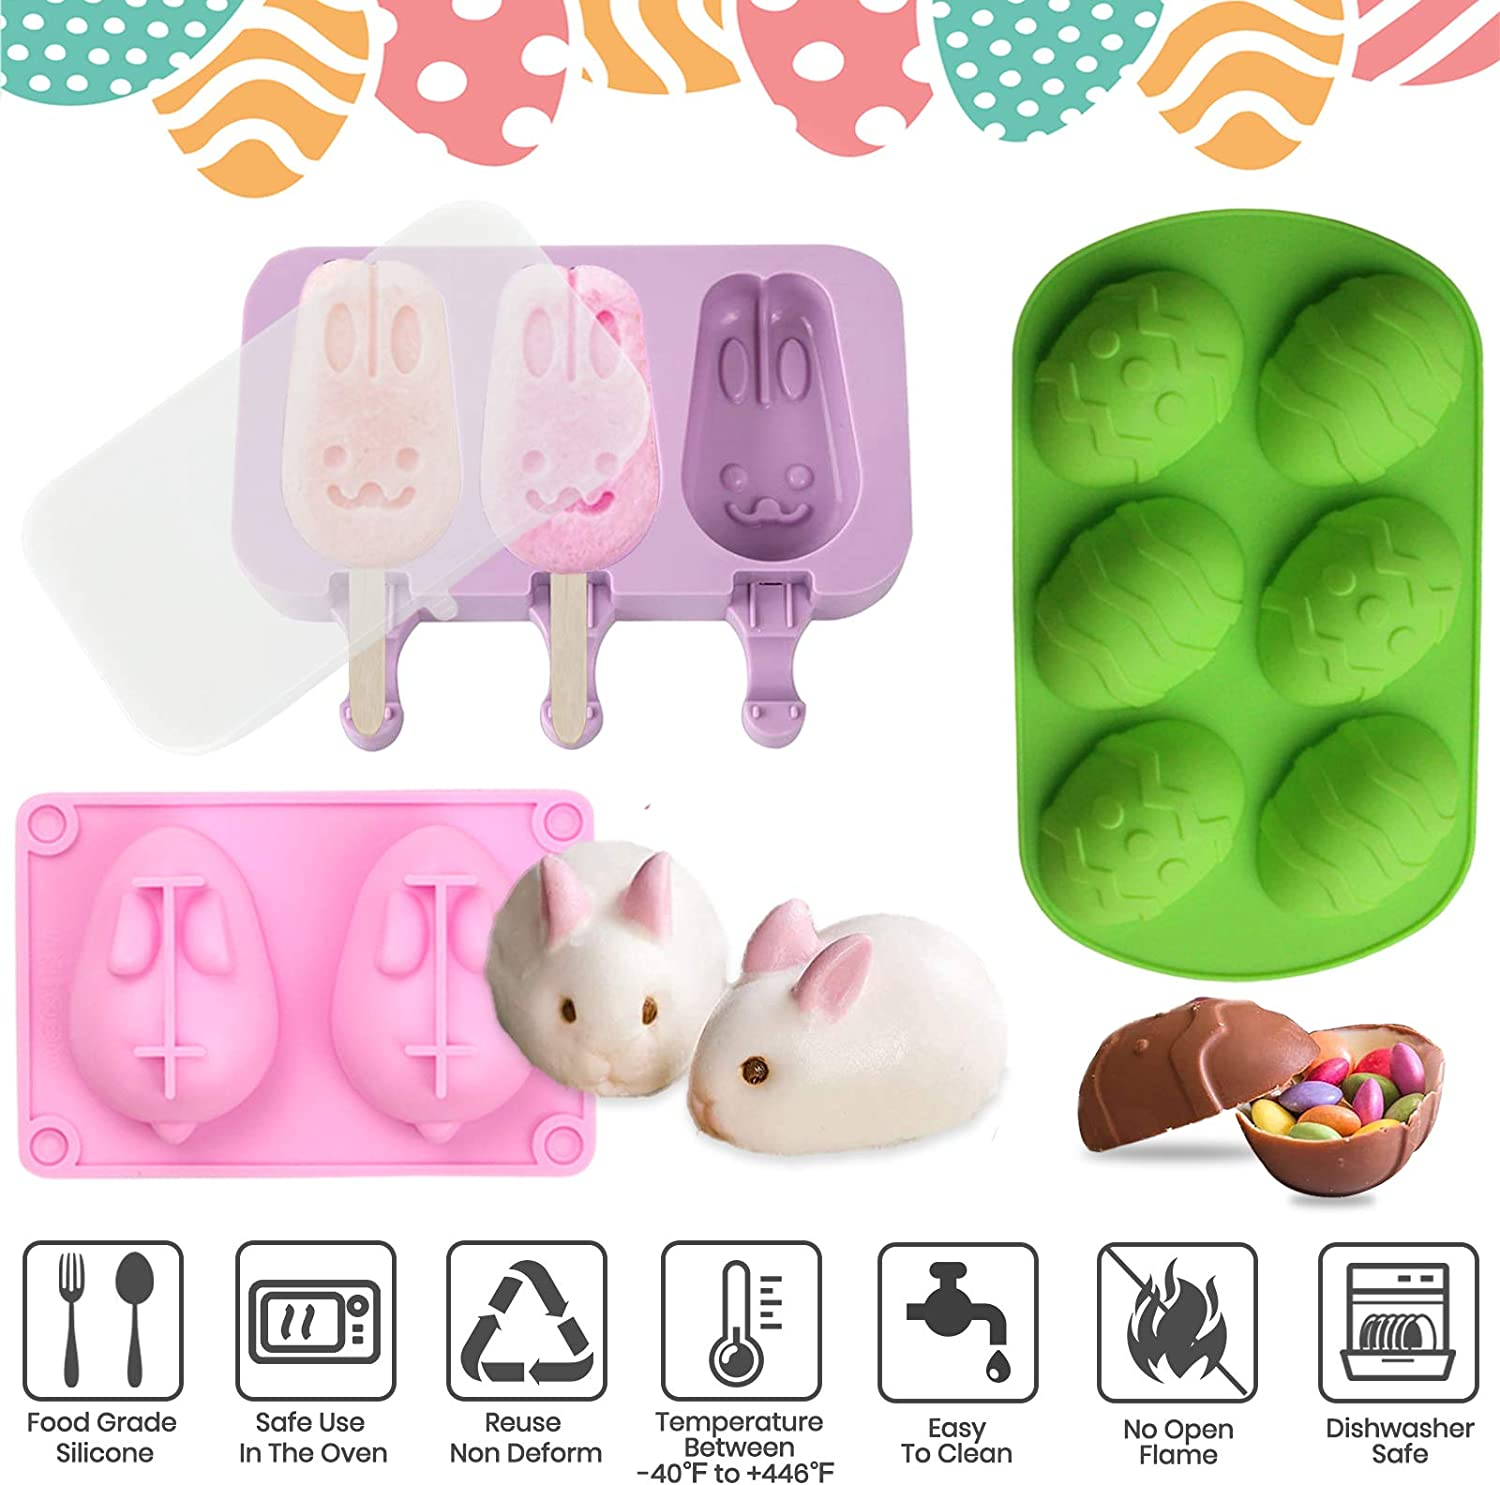 Easter Silicone Molds,Big Bunny Molds,Easter Eggs Silicone Mold,Popsicle Silicone Molds with 50 Wooden Sticks,2 Mini Wooden Hammer,5 Cake Brushes for DIY Chocolate Bomb,Candy A